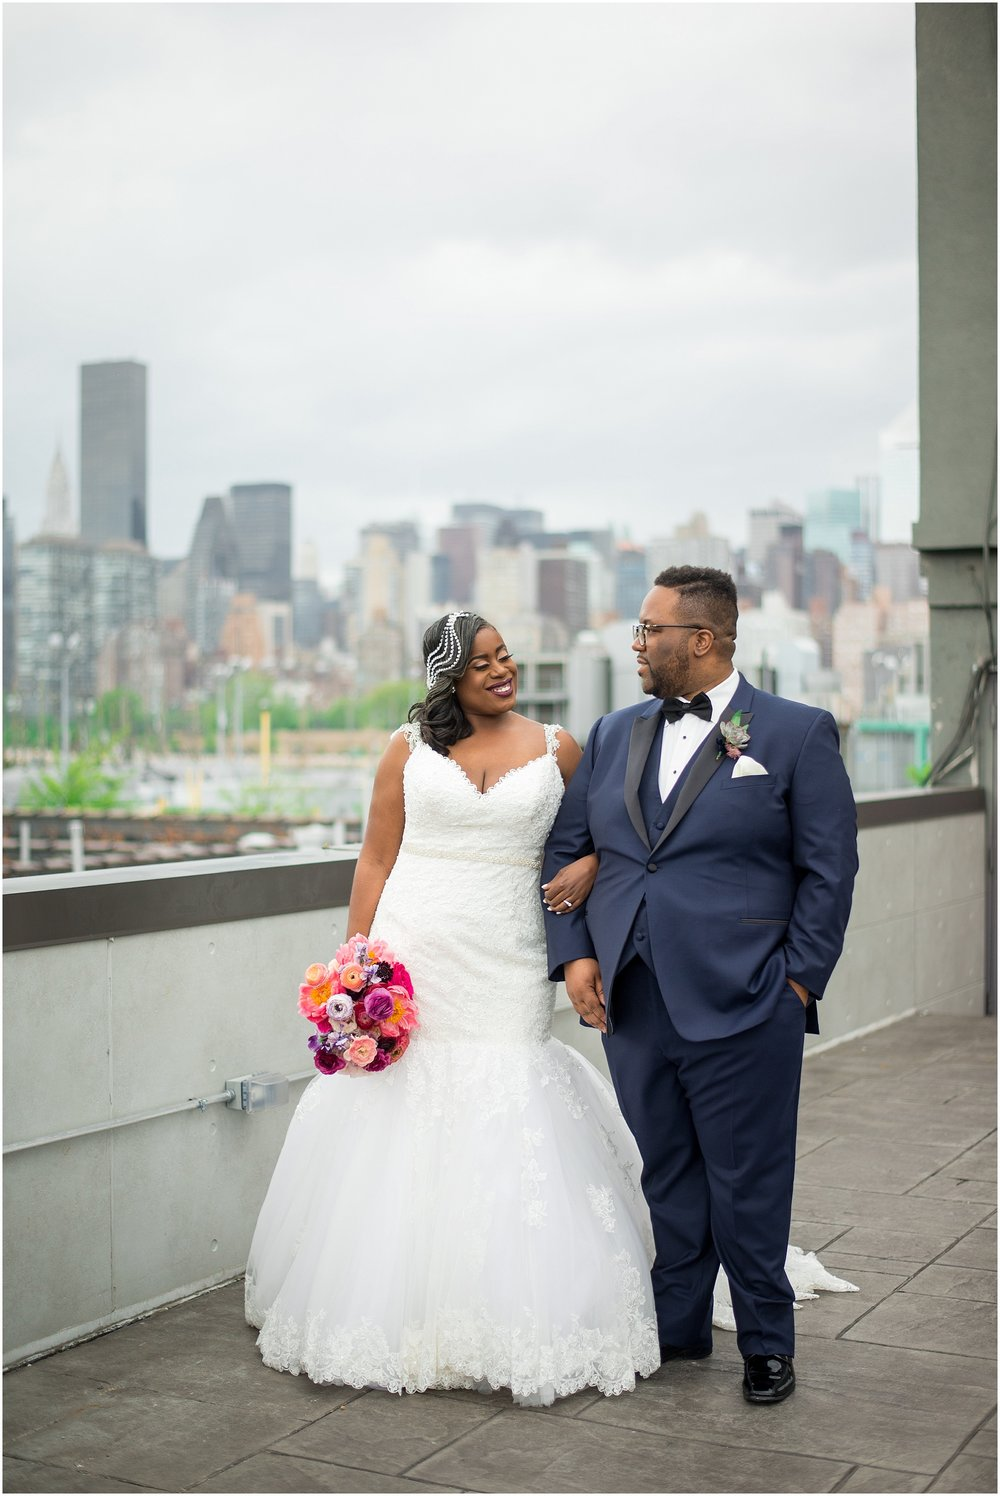 Sandrine and Eric Metropolitan Building Wedding Photography by Leandra_0012.jpg